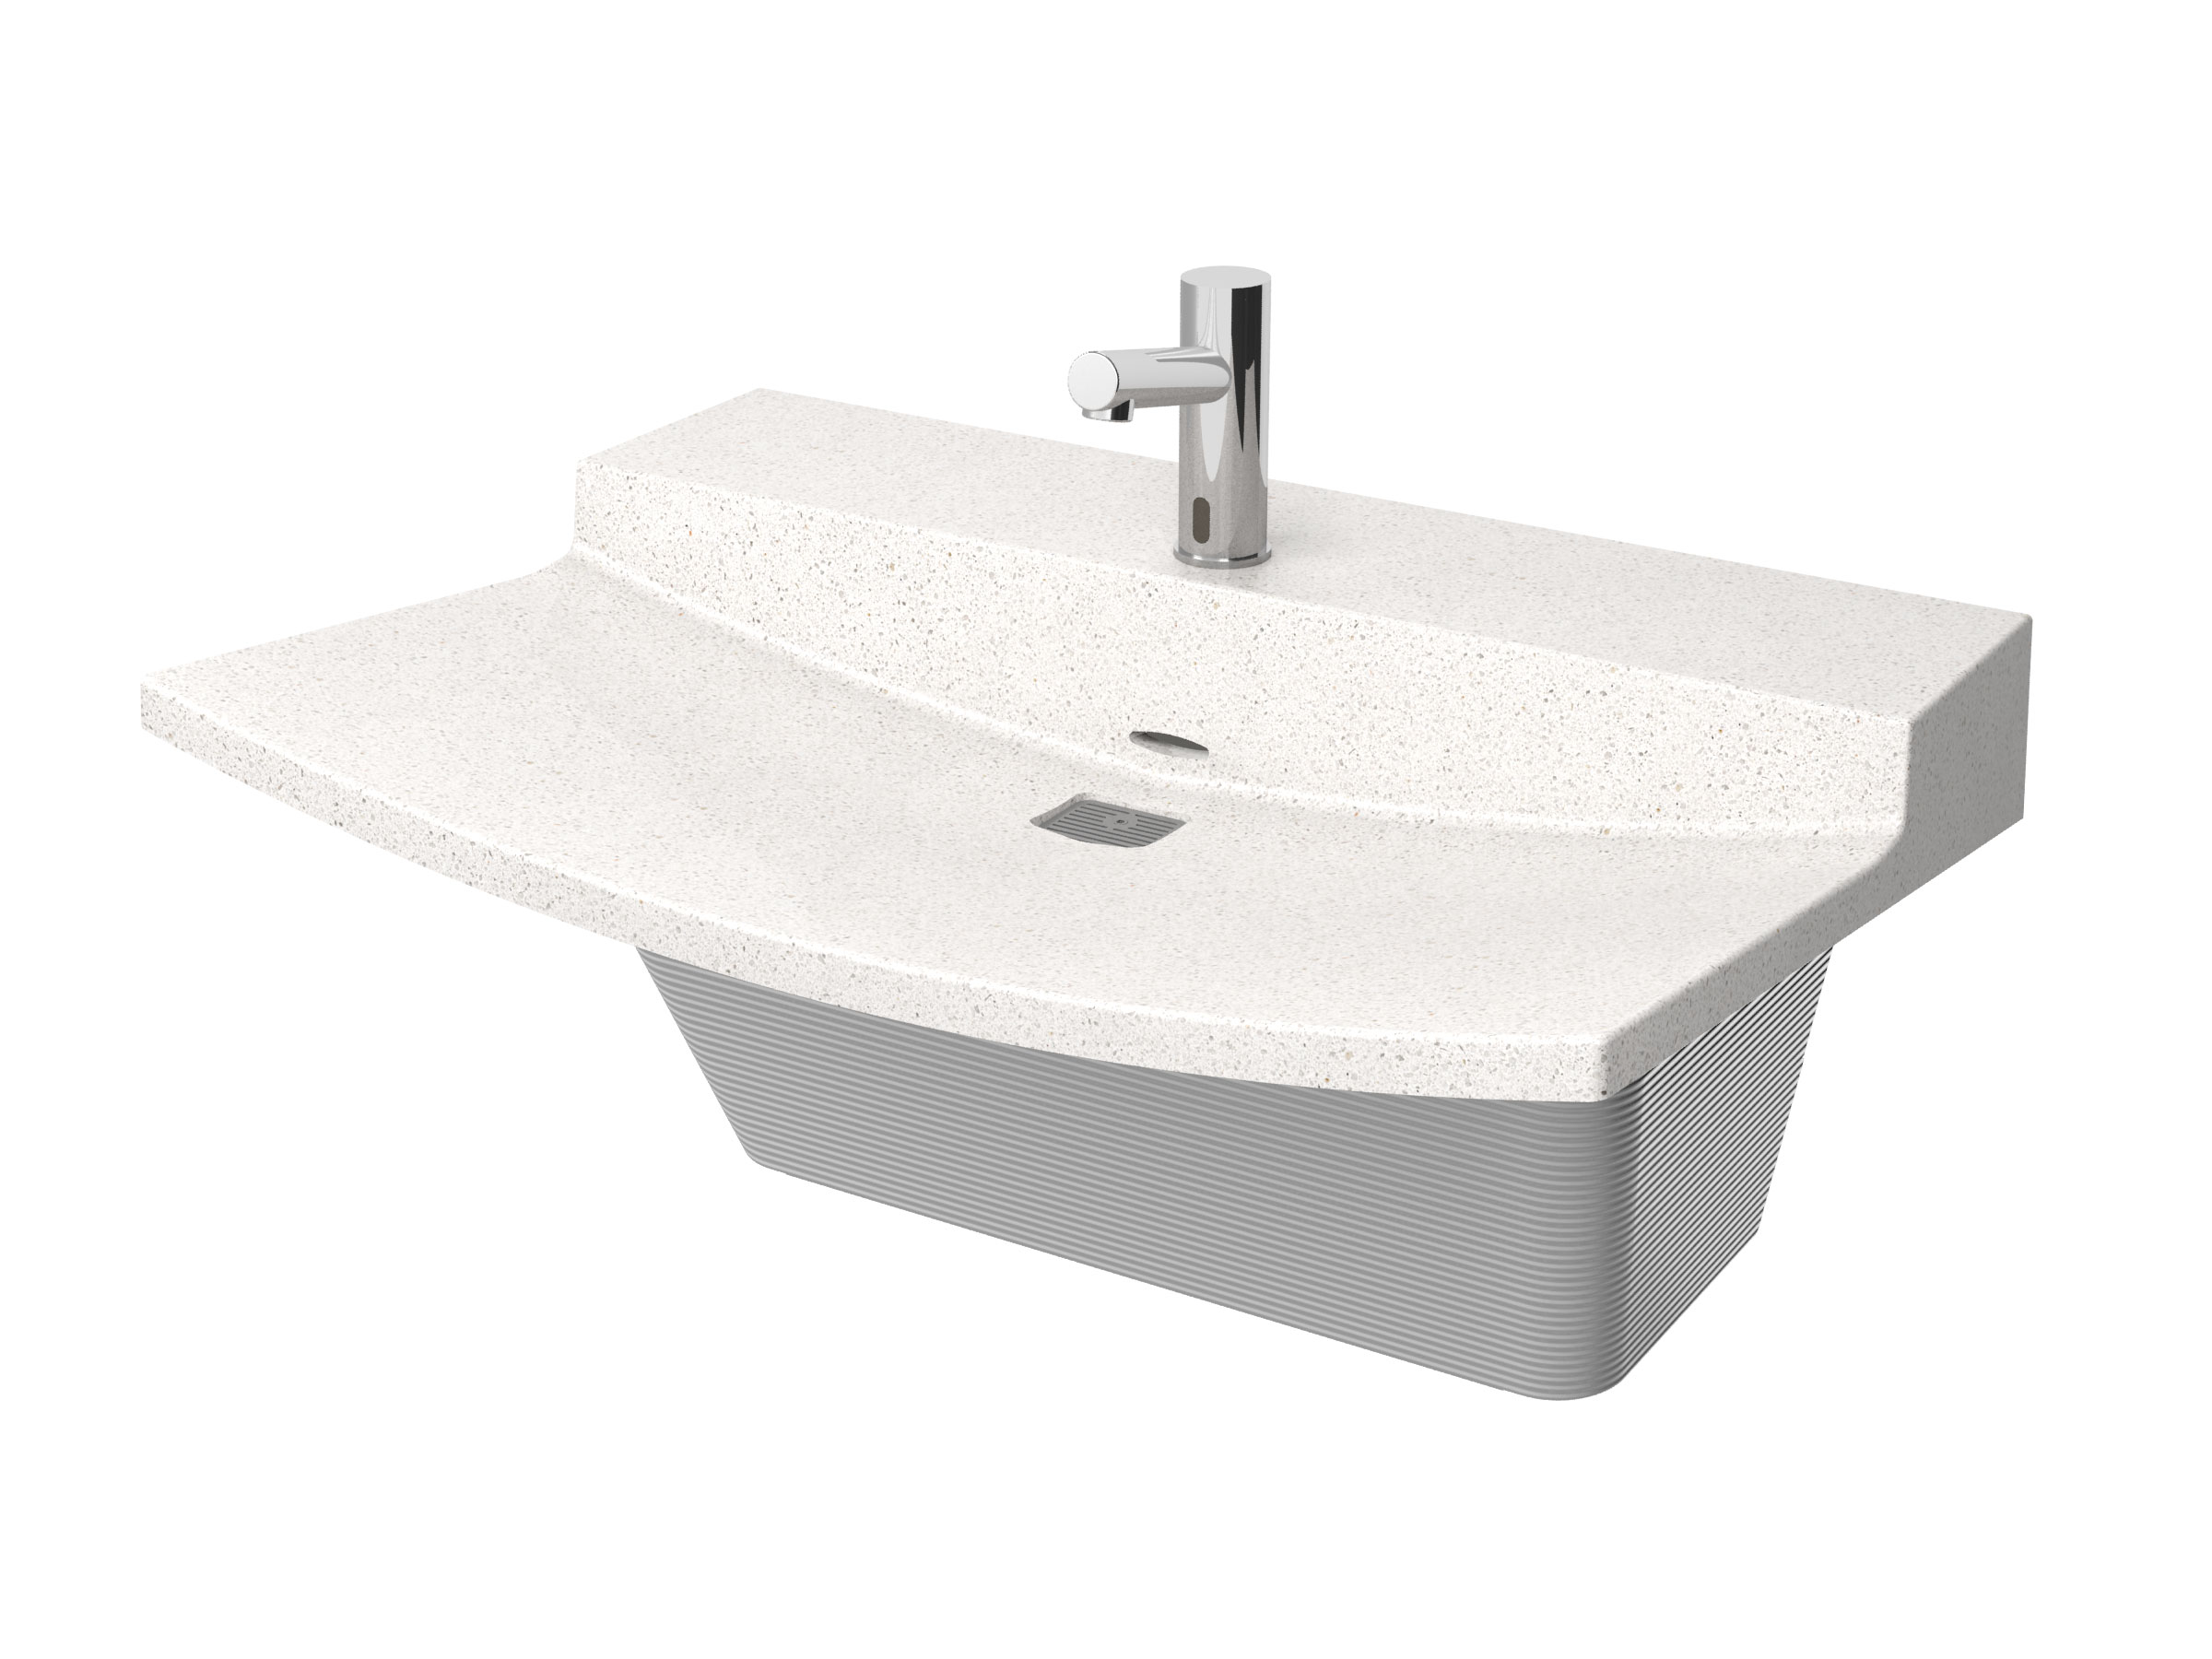 Download Bradley Verge Vld Revit Lavatory Sink Library